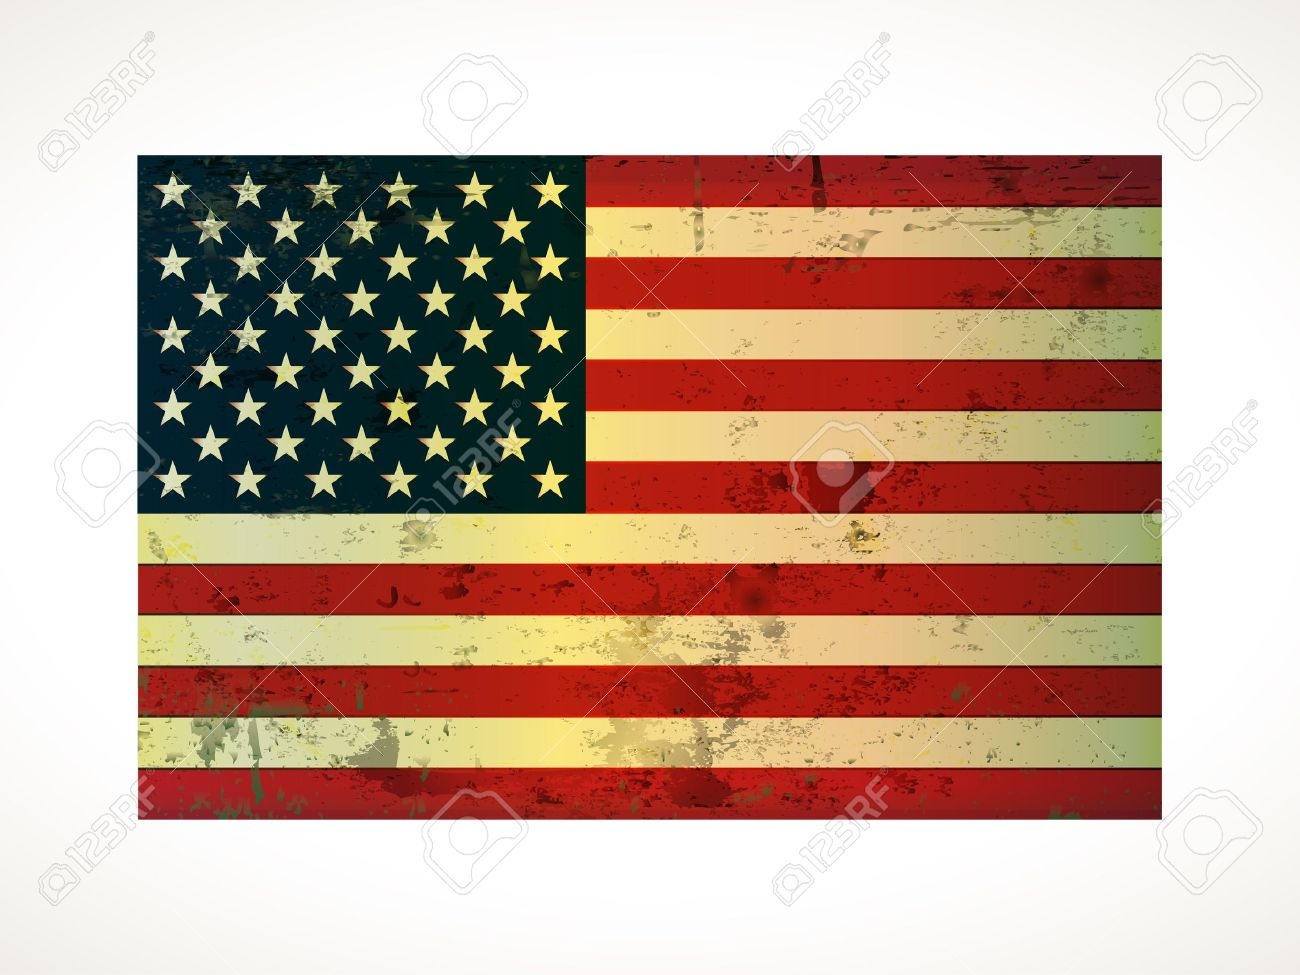 grunge american flag vector at getdrawings com free for personal